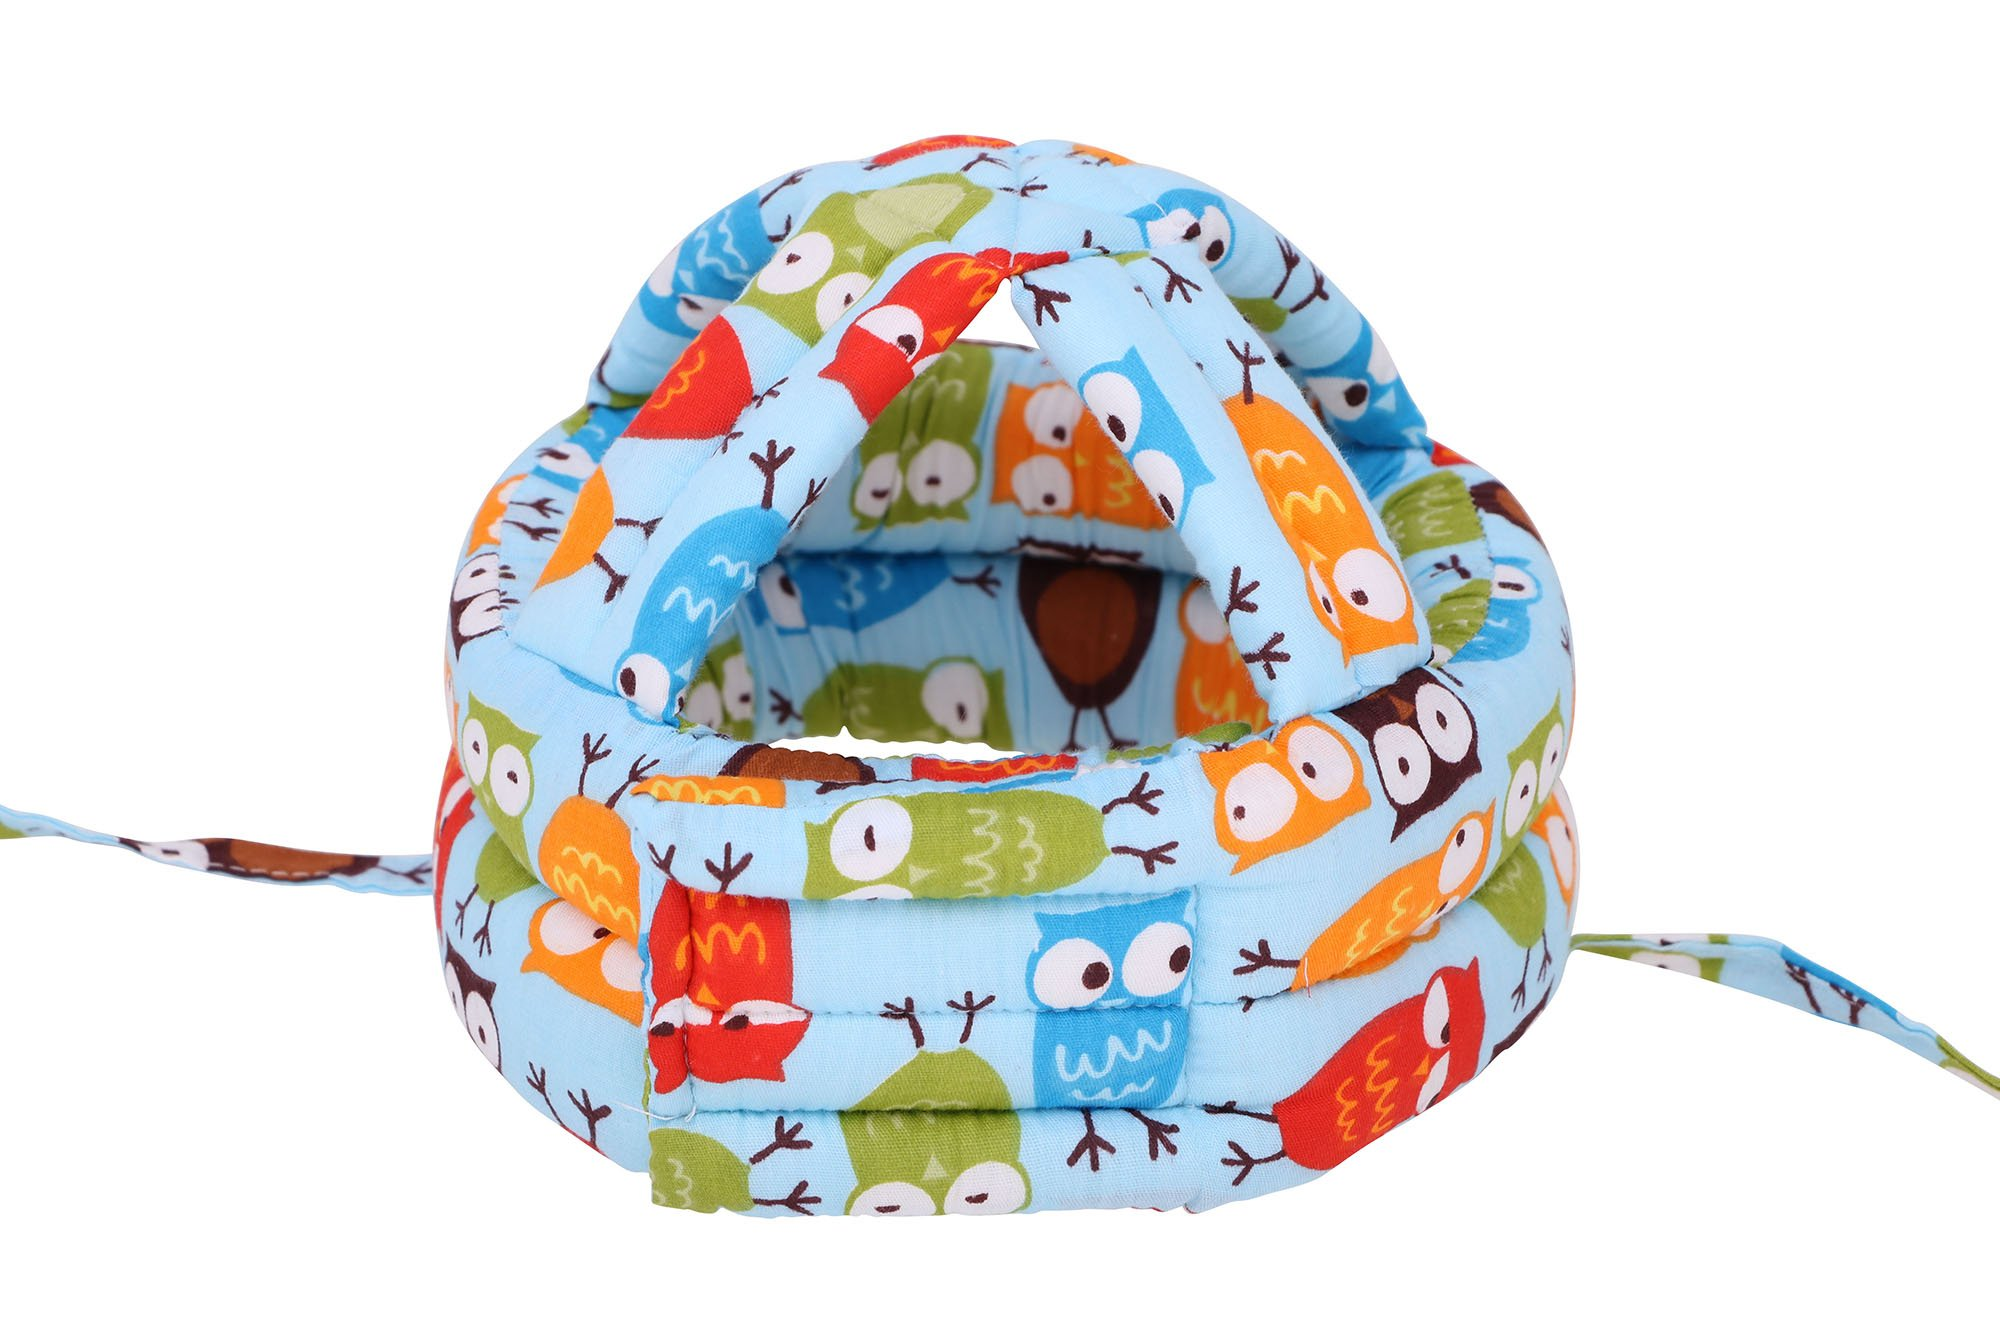 Simplicity Baby Safety Helmet Toddler Head Protection Cap Adjustable, Blue Owl